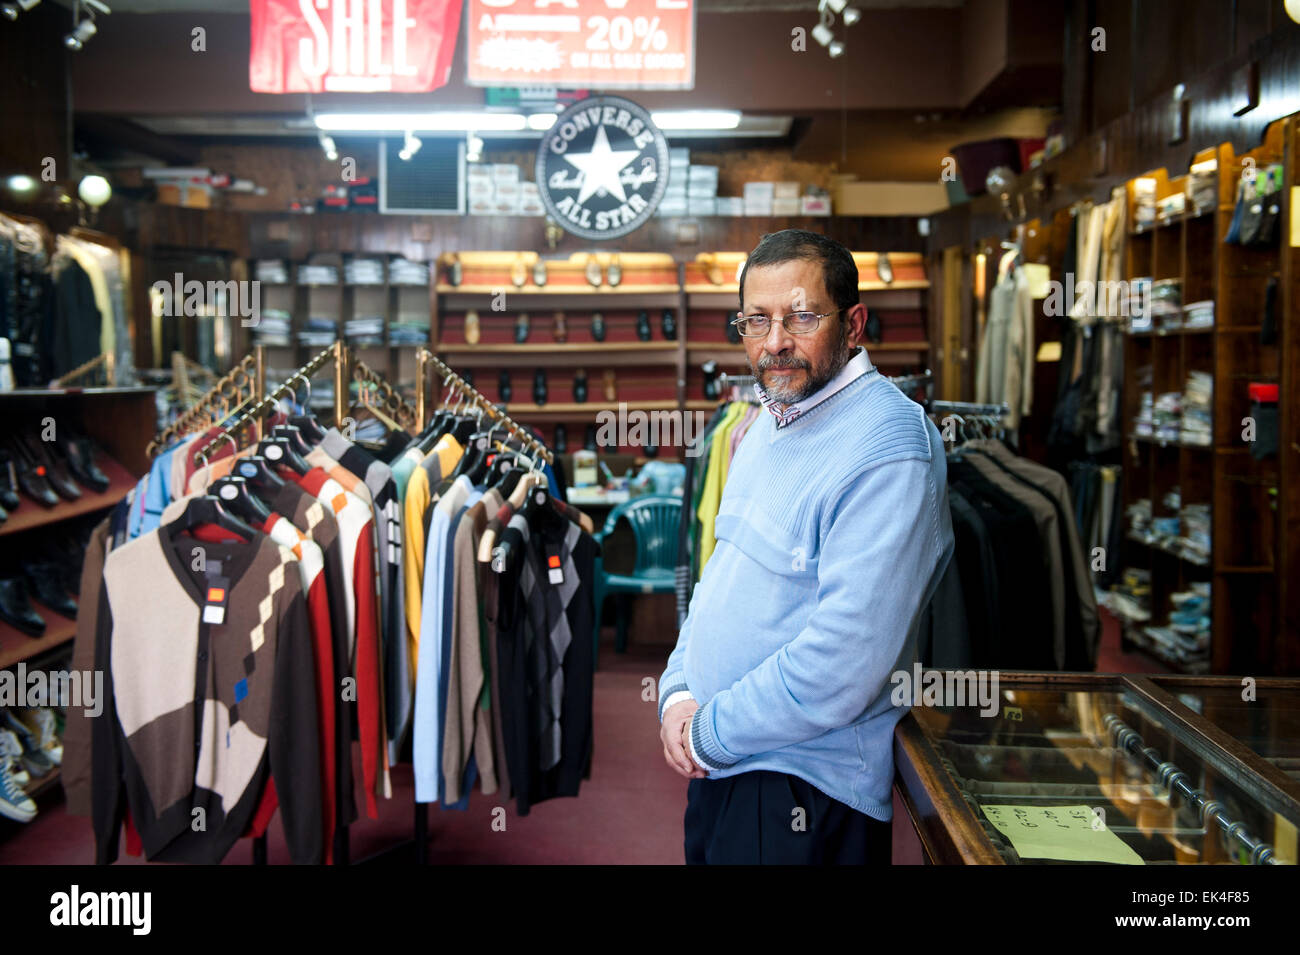 khalil shaiknag (58) running a family owned store that has been around for  3 generations. from the 1940s. a statue - Stock Image